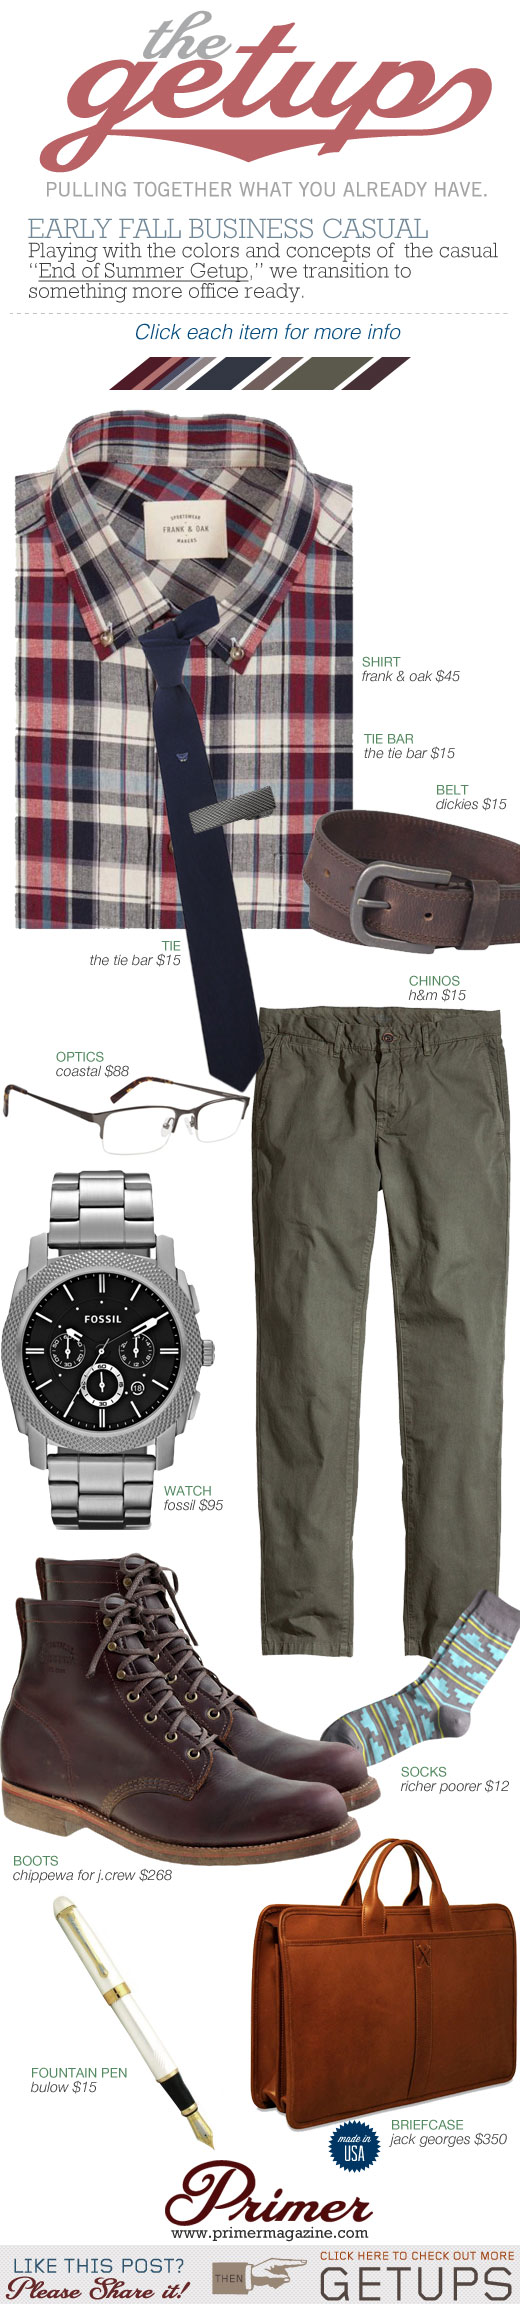 Getup - Early Fall Business Casual - Red plaid shirt, blue tie, olive chinos, glasses